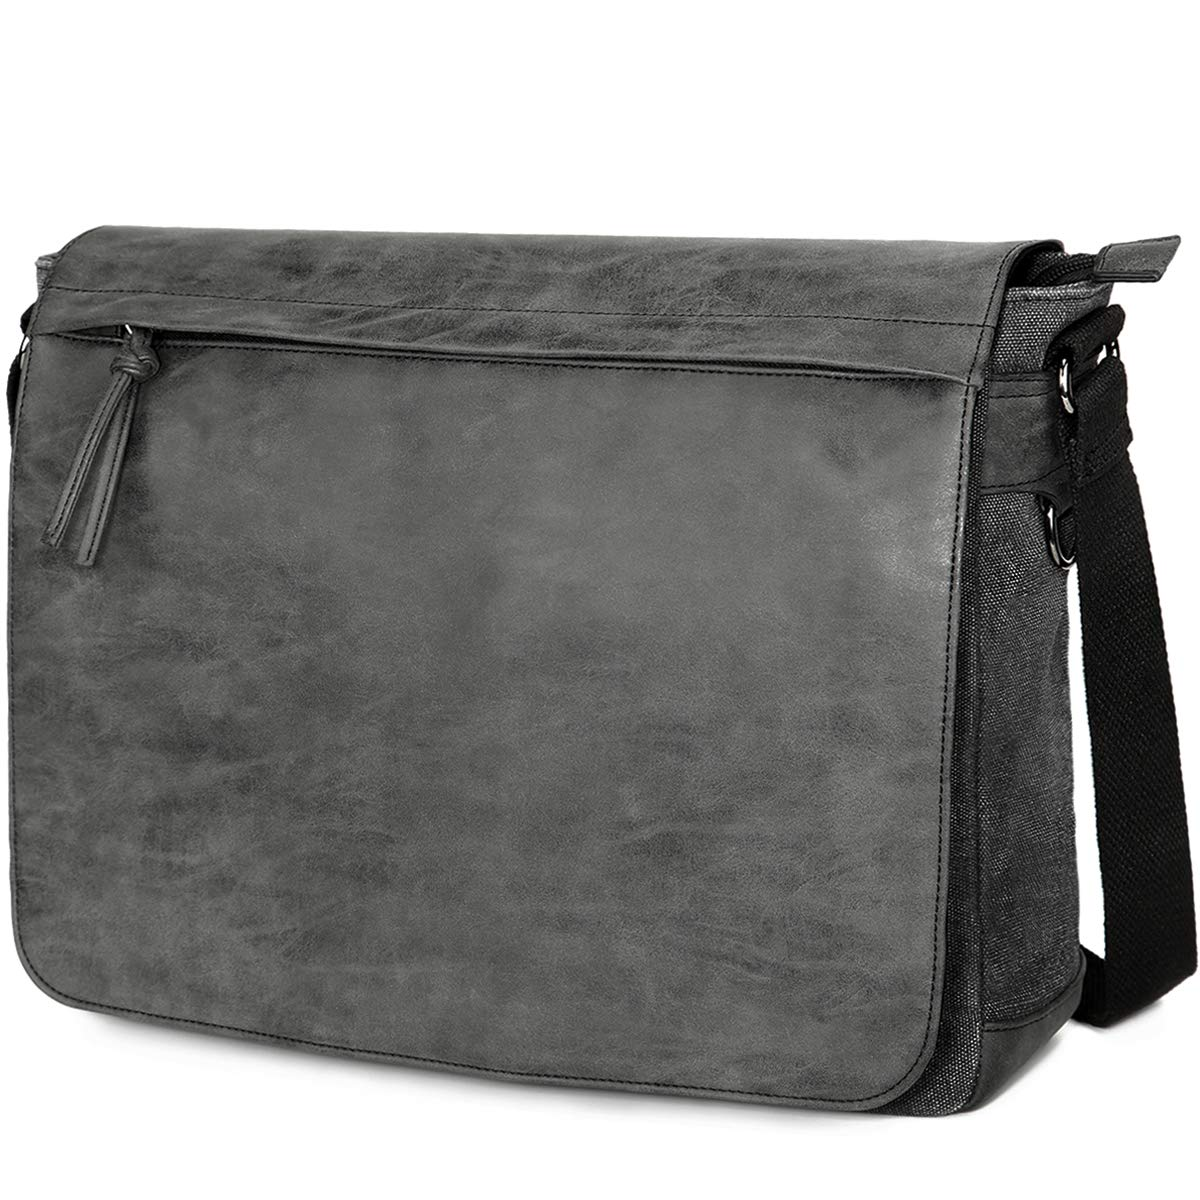 "Mens Laptop Messenger Bags 15.6"" Water Resistant Shoulder Bag Tocode PU Leather Canvas Satchel Crossbody Bags Brifecase Office Bag Large Computer Bag for Work College School Travel Black"